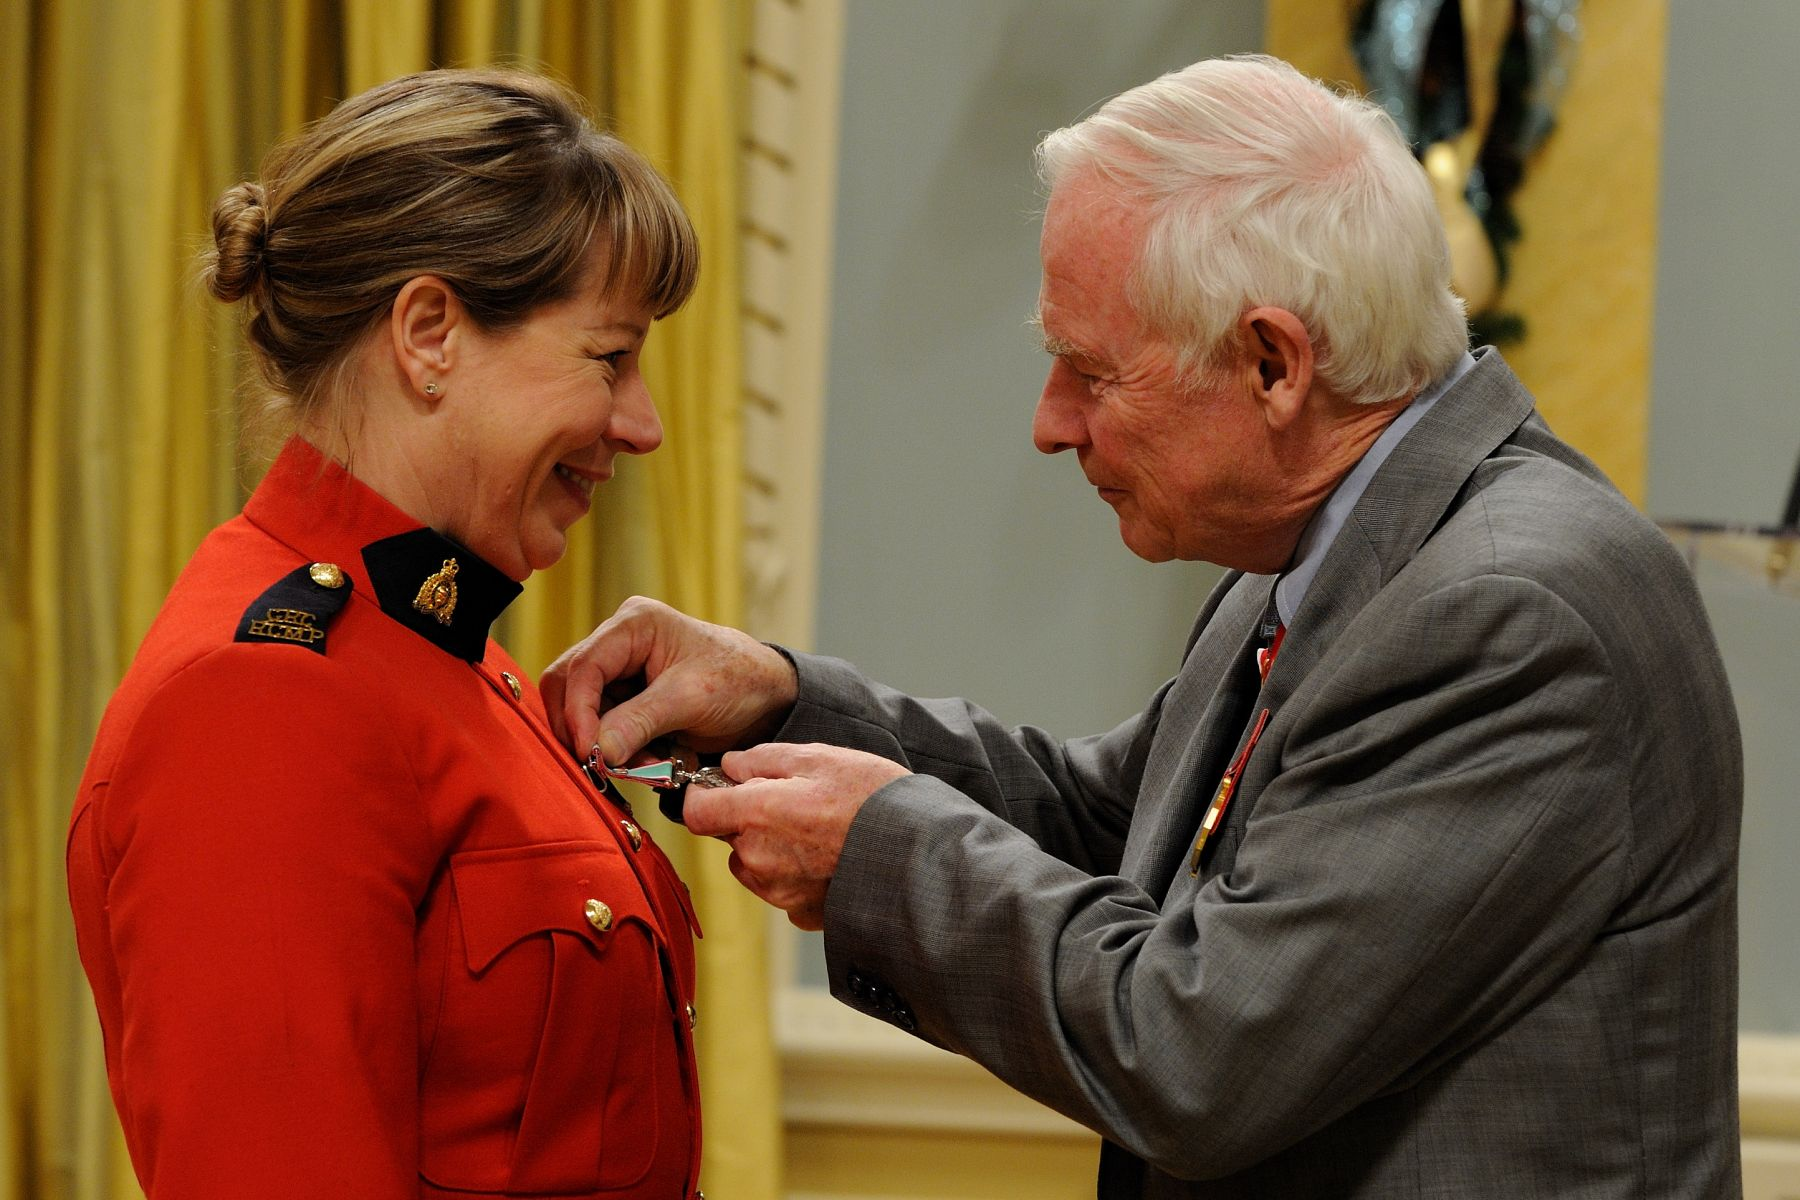 RCMP Corporal Jennifer J. Turner received the Operational Service Medal for her work in Sierra Leone.